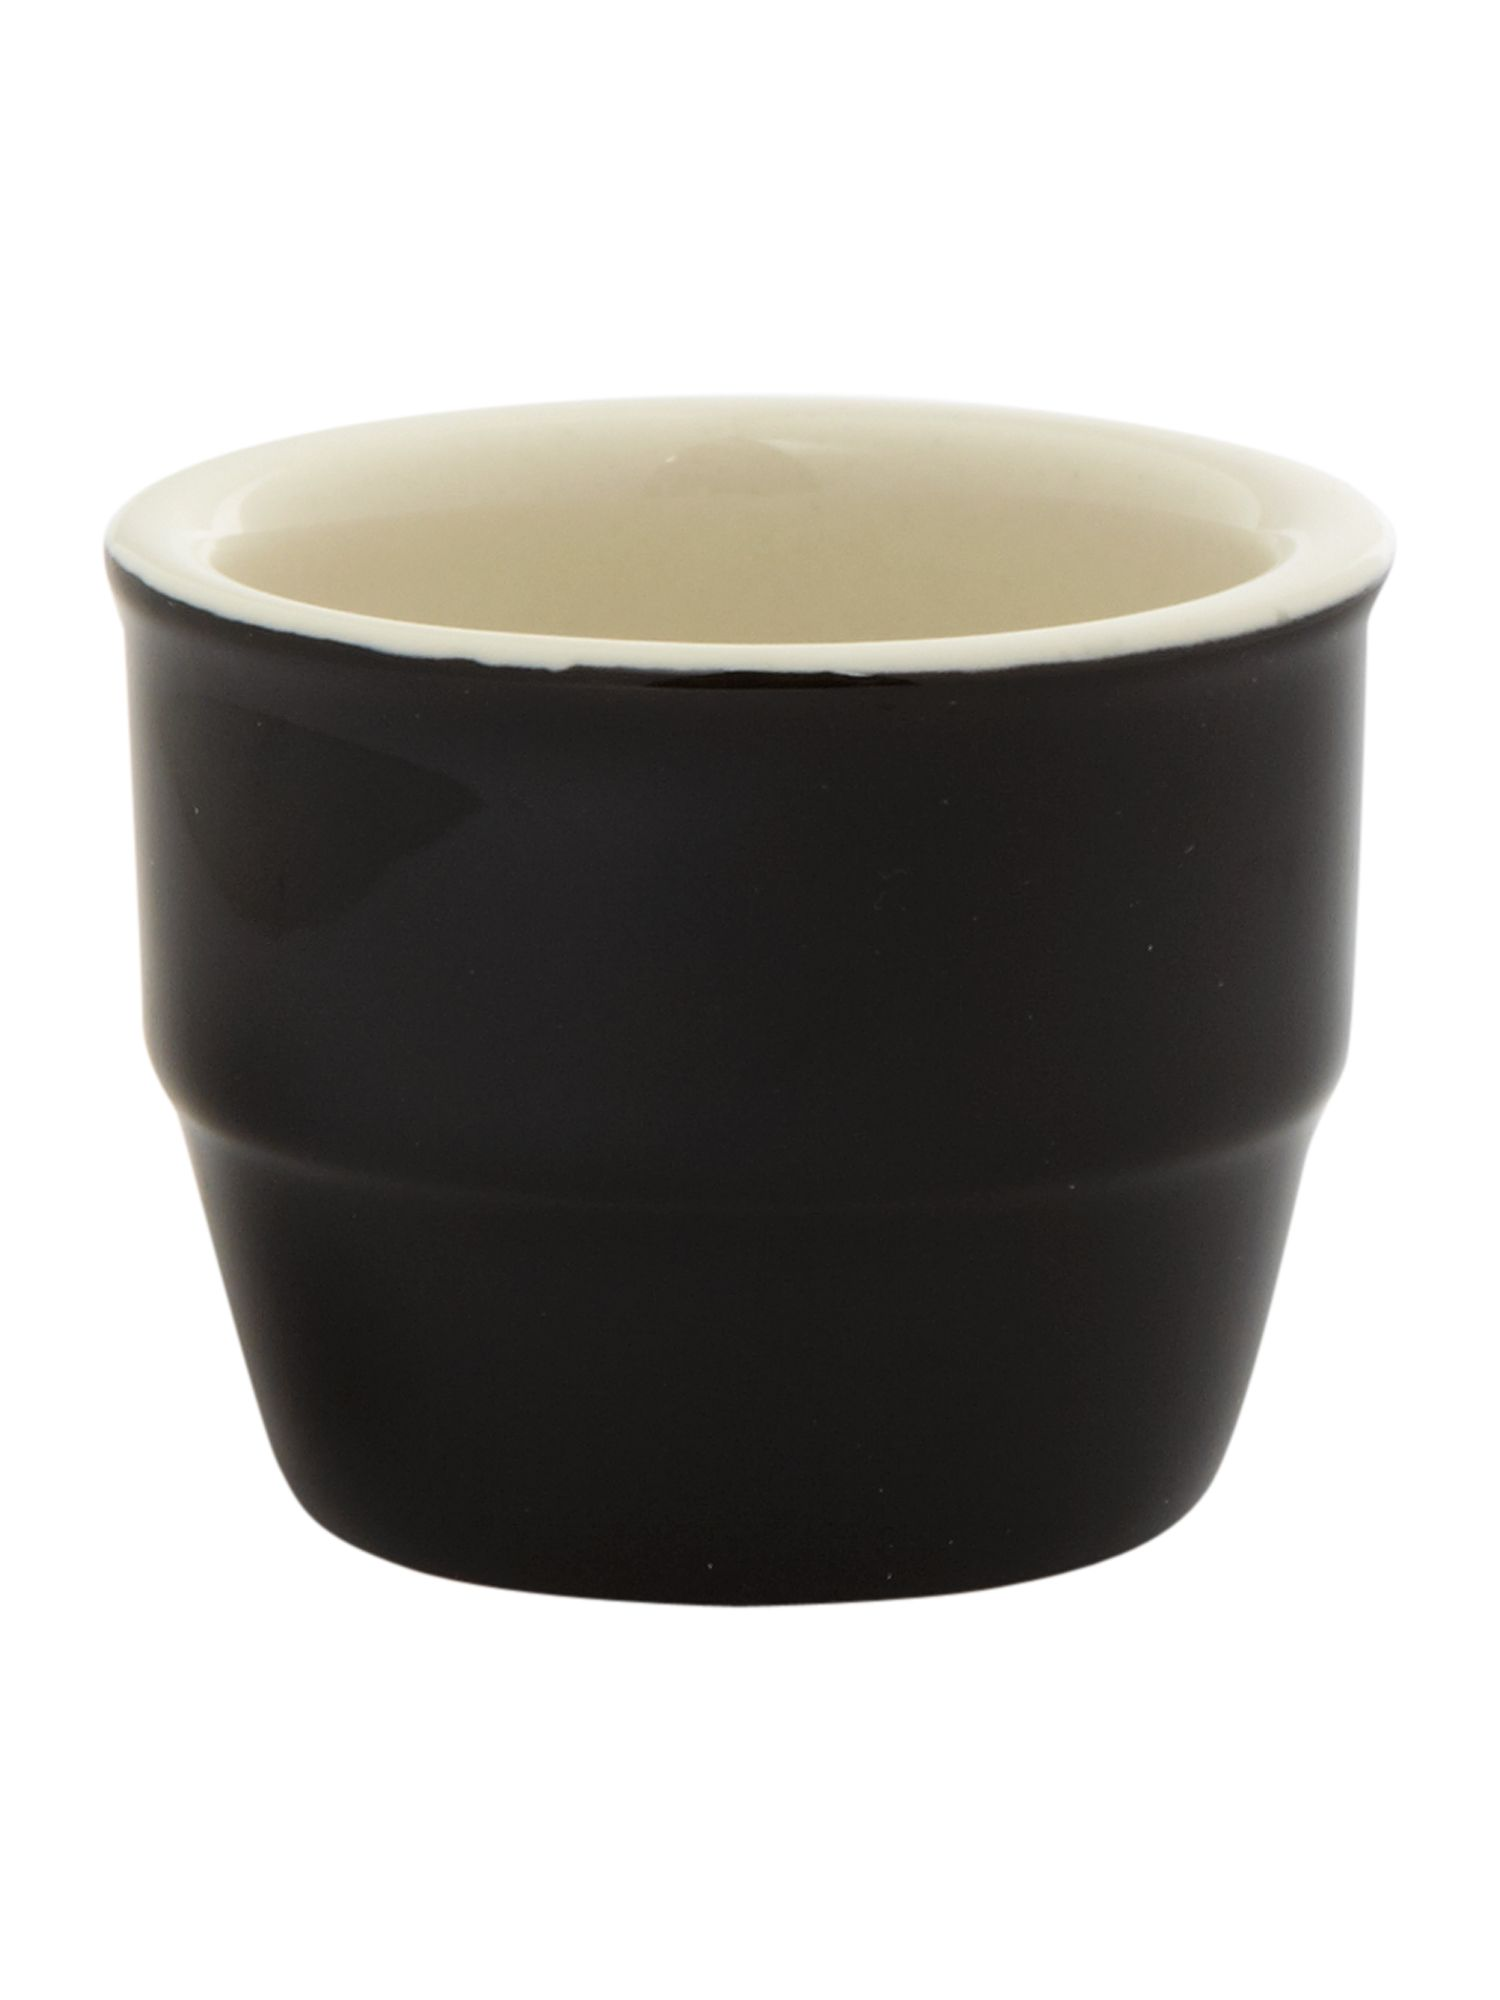 Maison egg cups set of 4, black